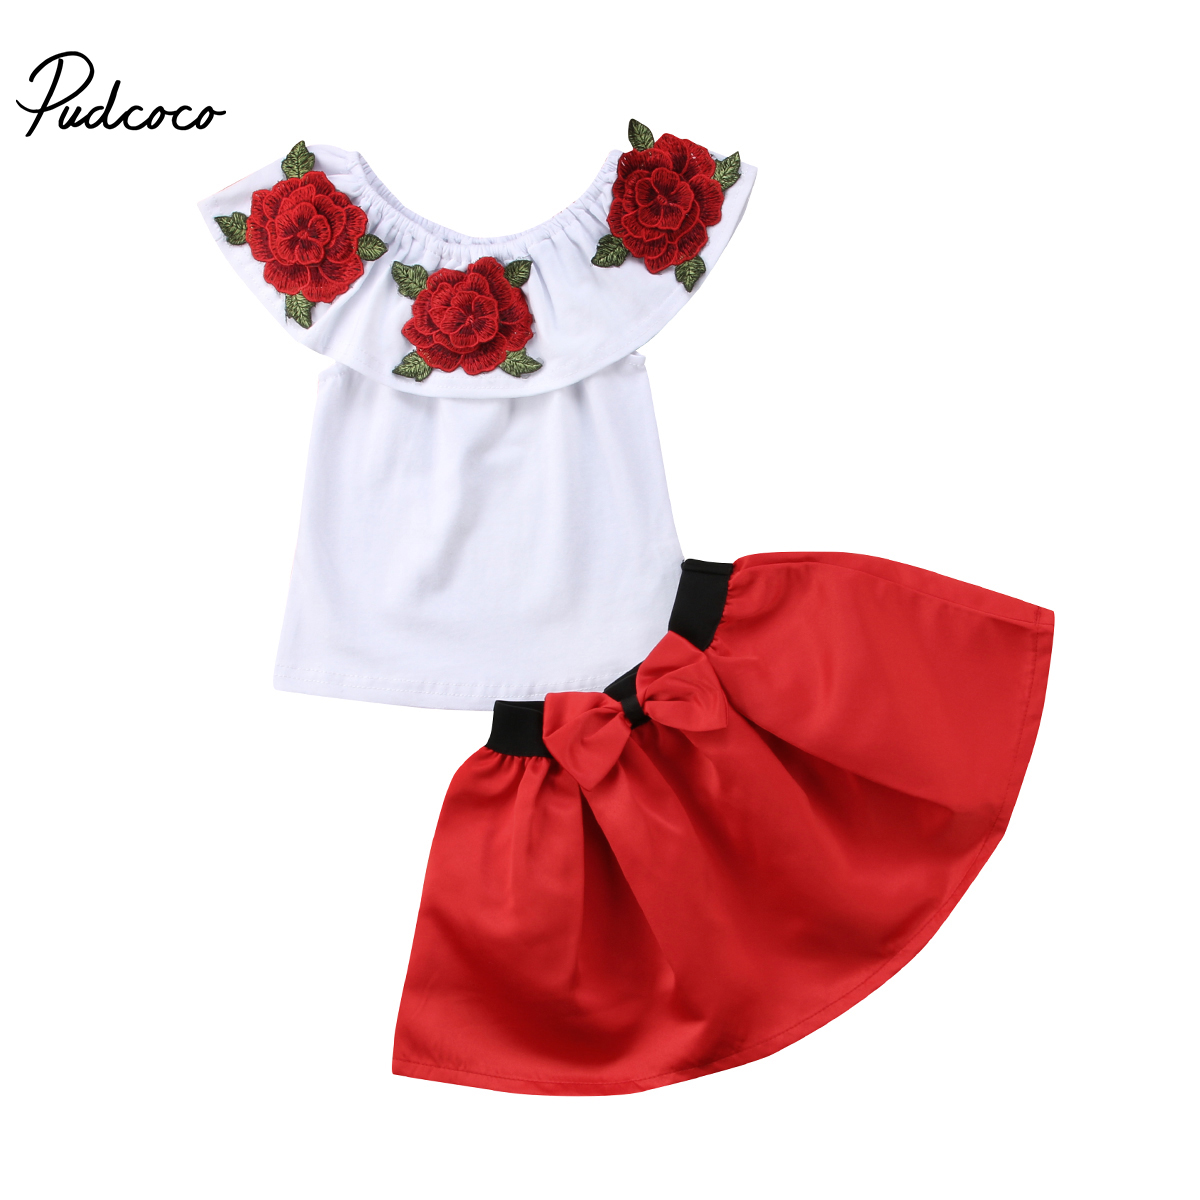 2PCS Children Baby Girl Summer Clothes Off shoulder 3D Embroidery Flower Tops+Bow Tutu Skirt Outfits Princess Toddler Kids Set